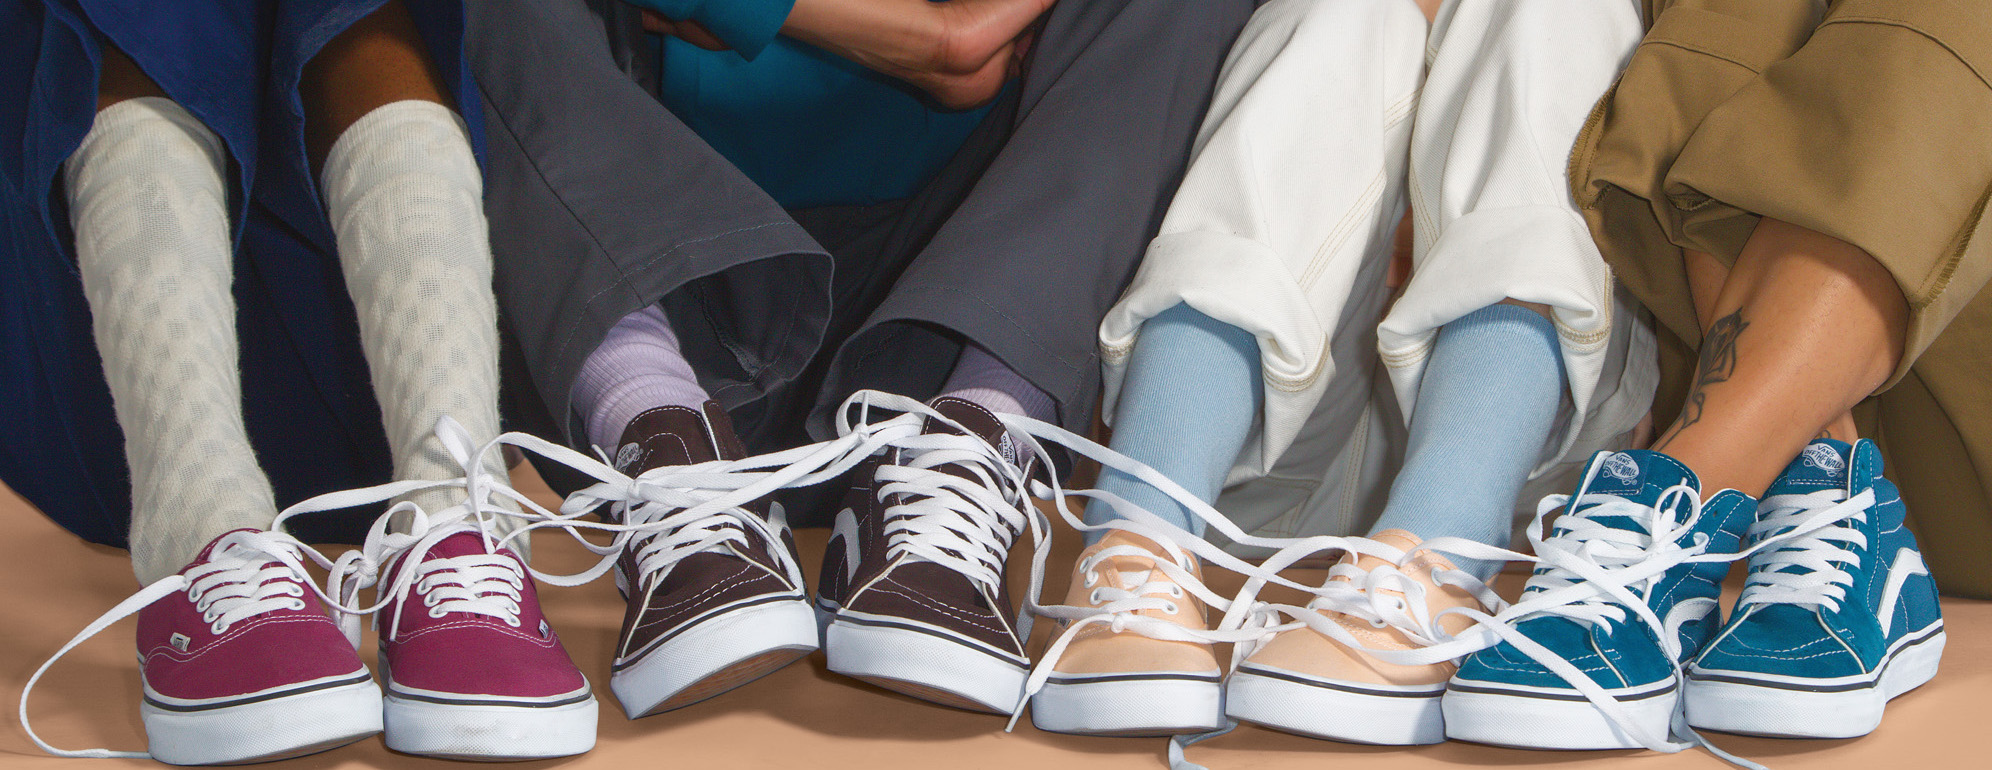 Vans Introduces The Color Theory Collection